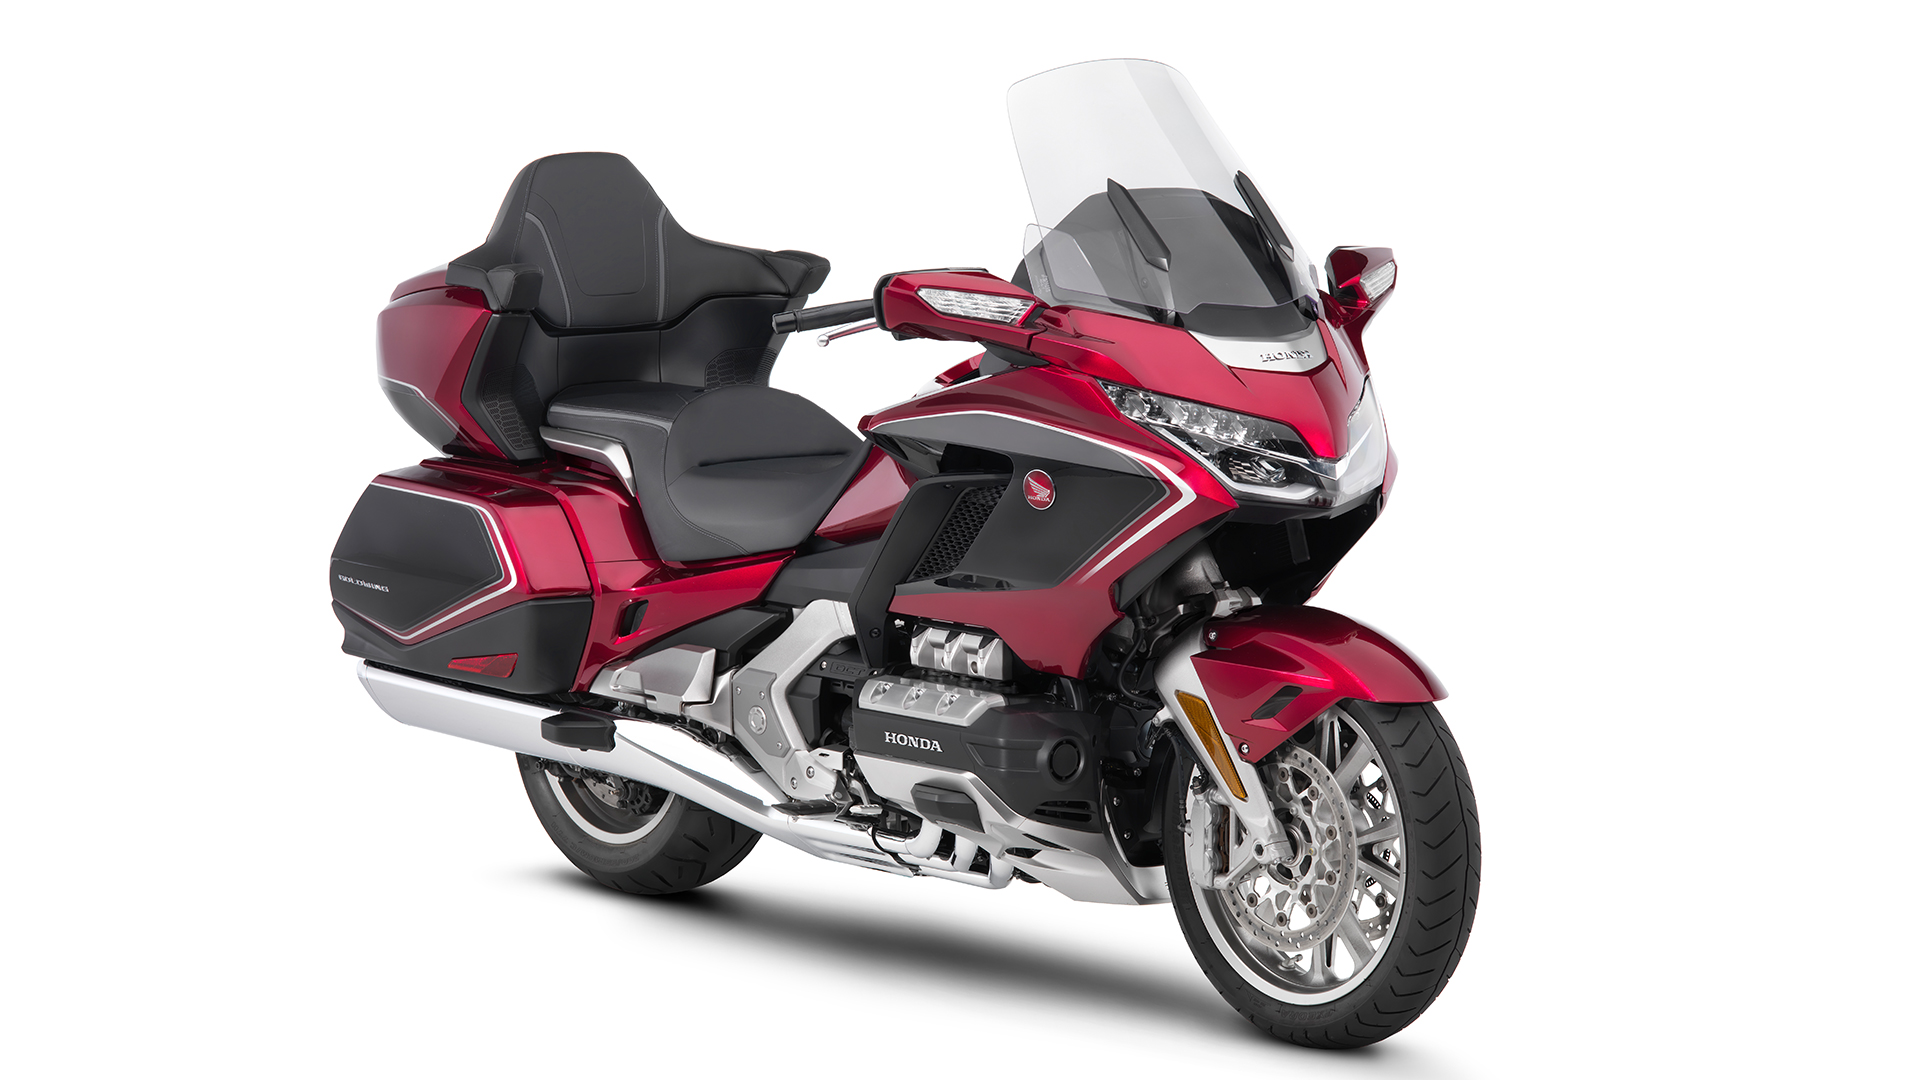 honda goldwing 2018 price  mileage  reviews Subaru Logo Black and White Chevrolet Logo Black and White